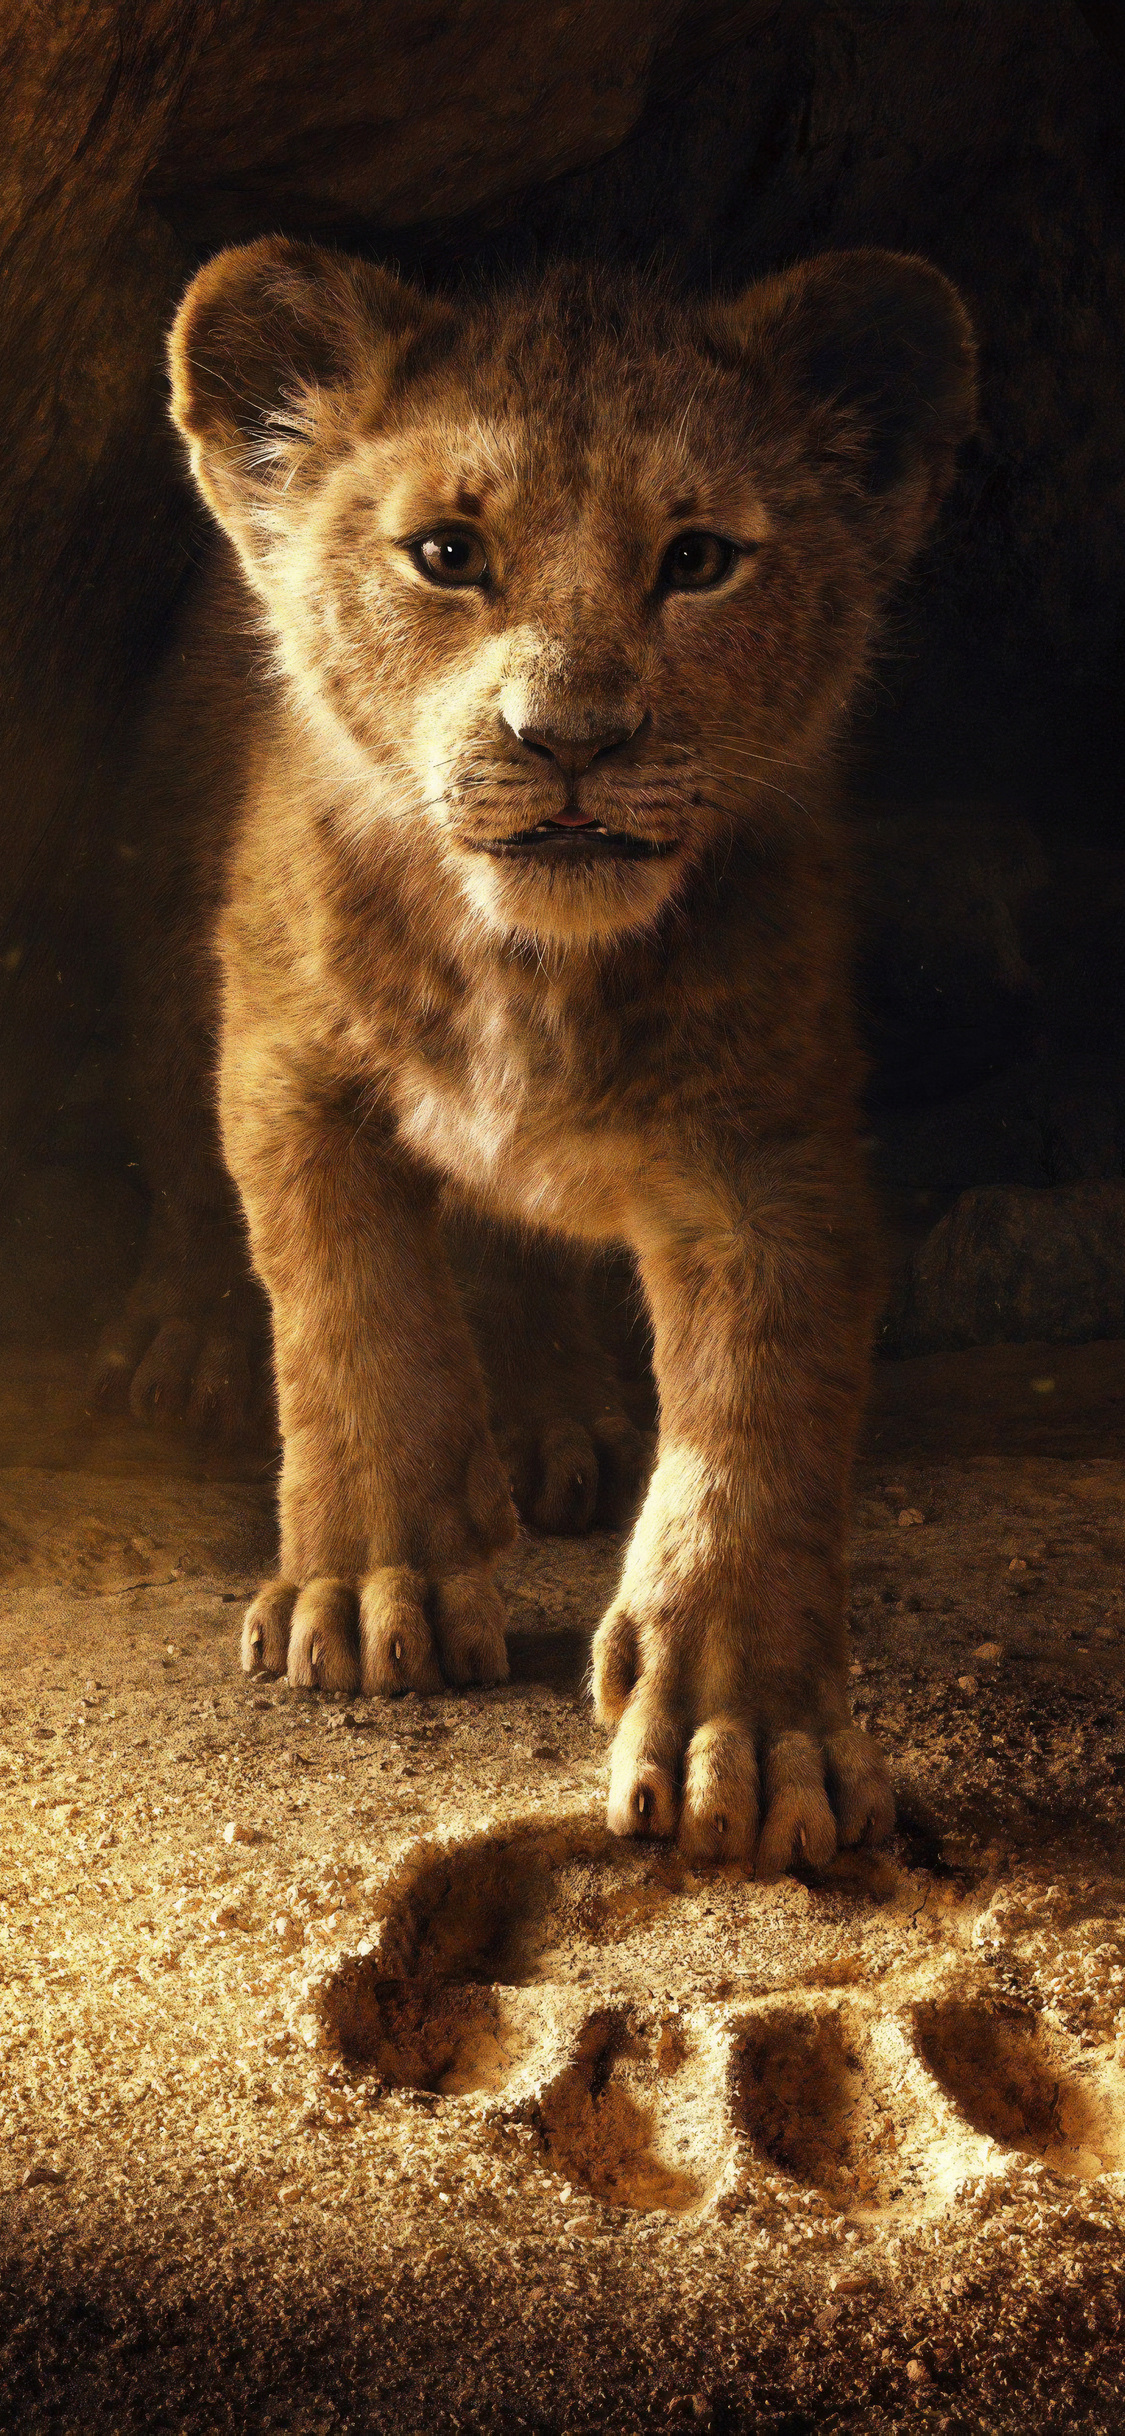 1125x2436 The Lion King 2019 Iphone XS,Iphone 10,Iphone X HD